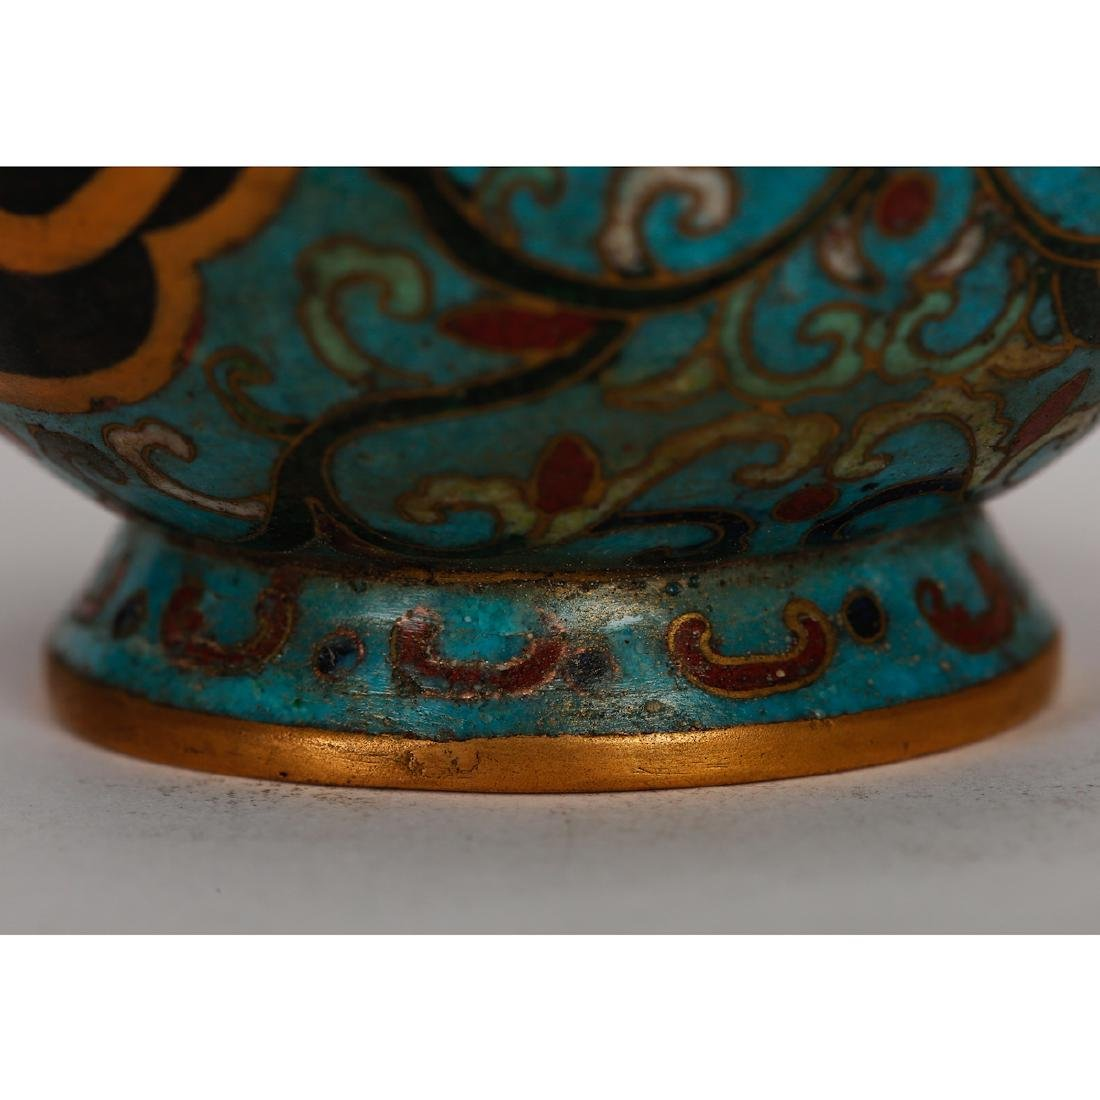 CHINESE CLOISONNE DOUBLE GOURD VASE - 4